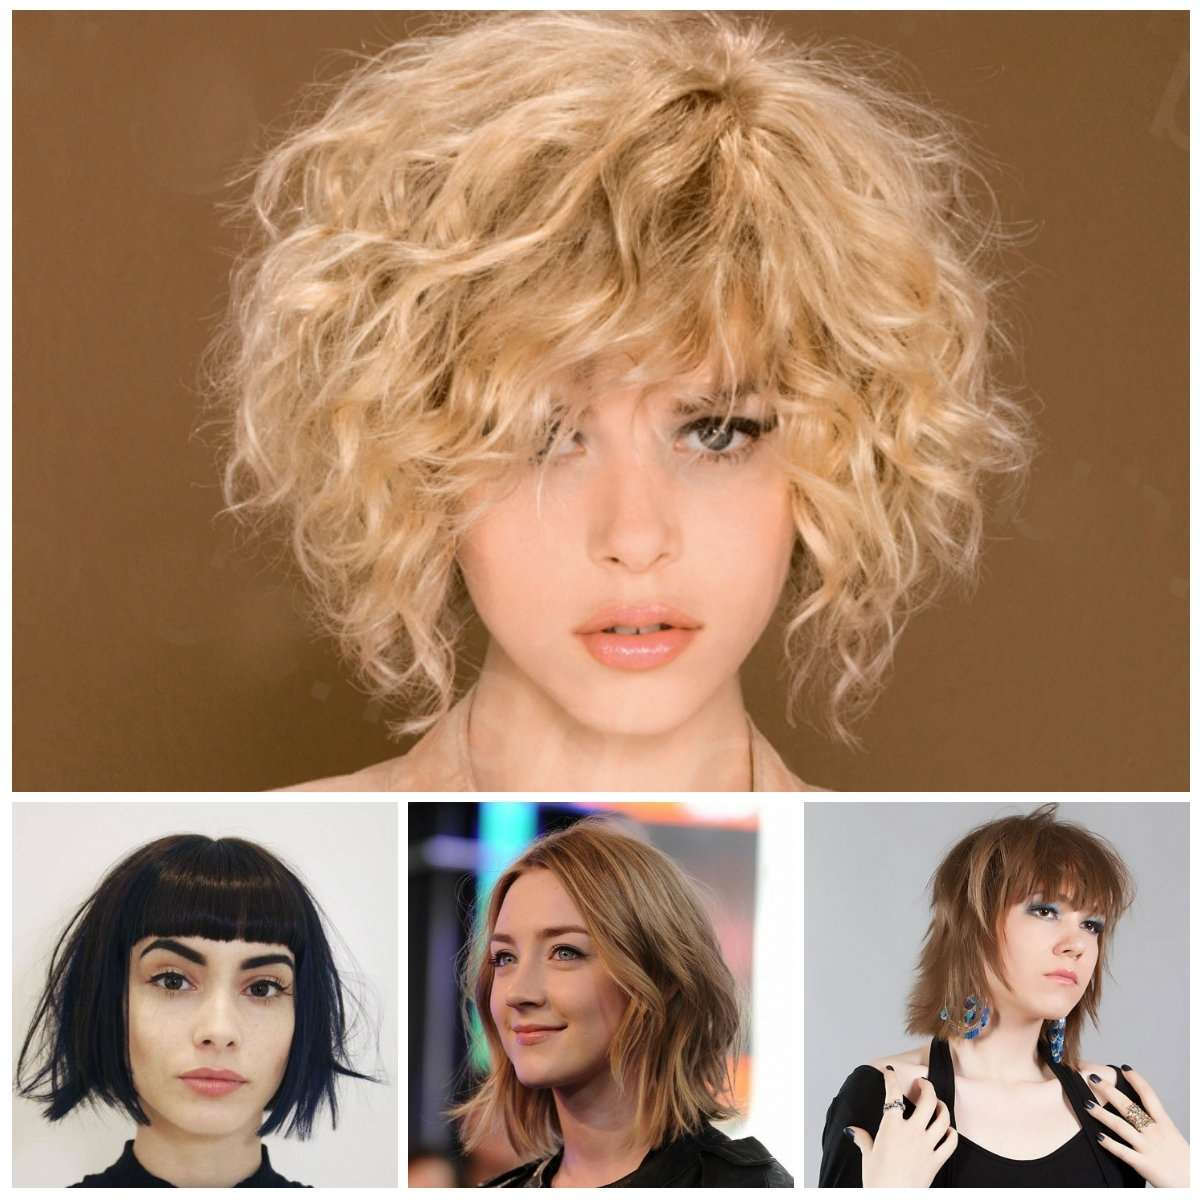 Widely Used Shaggy Crop Hairstyles Pertaining To Shaggy Bob Haircut Ideas – New Hairstyles 2017 For Long, Short And (View 14 of 15)